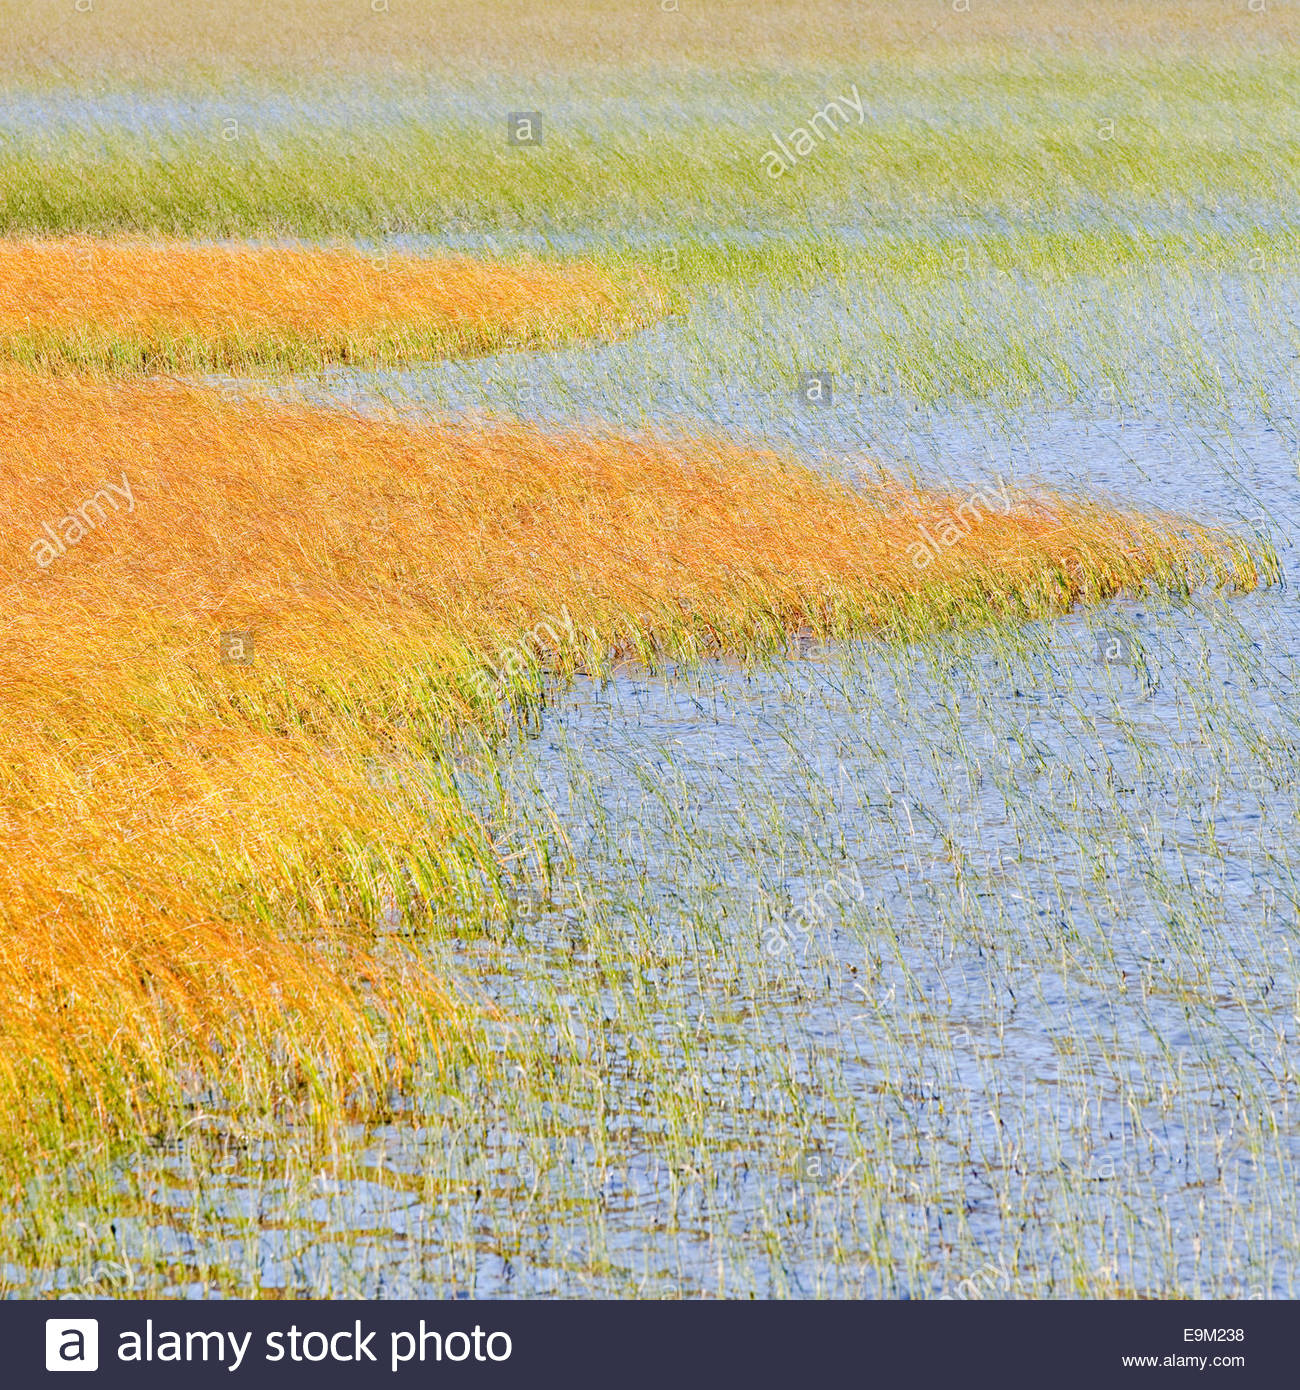 Colorful yellow and green and blue - Stock Image